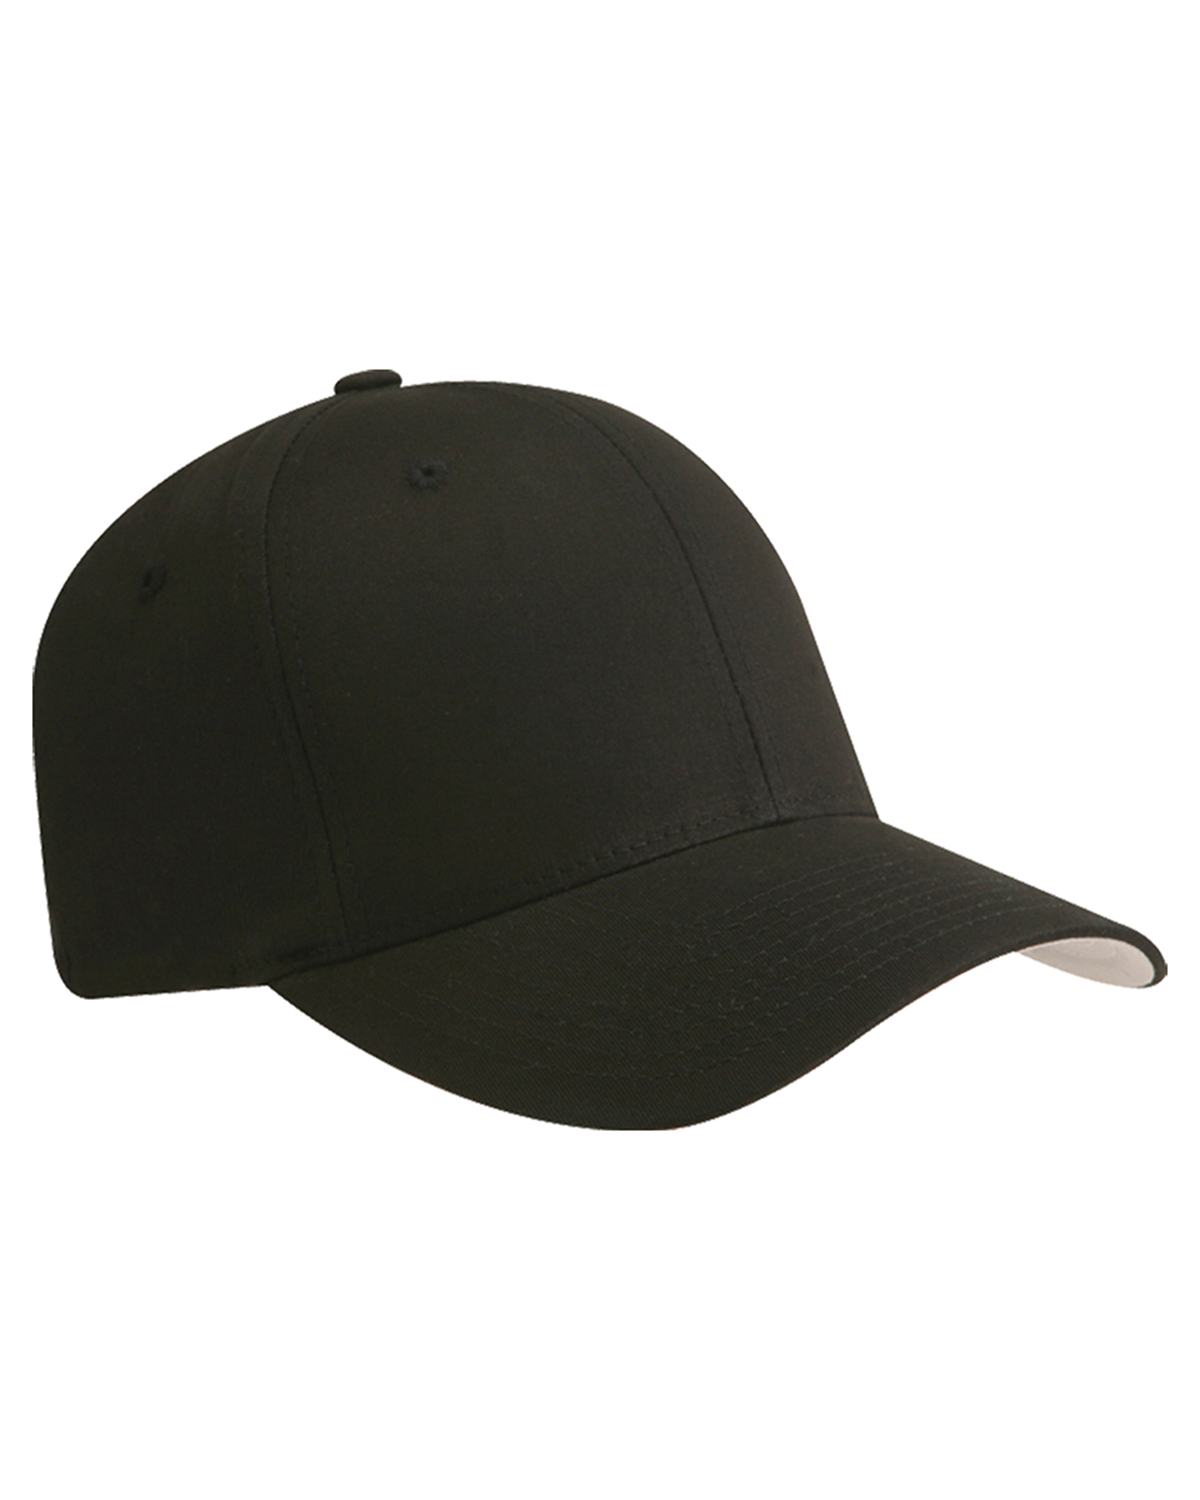 Yupoong 5001 Unisex 6Panel Structured Mid-Profile Cotton Twill Cap at GotApparel